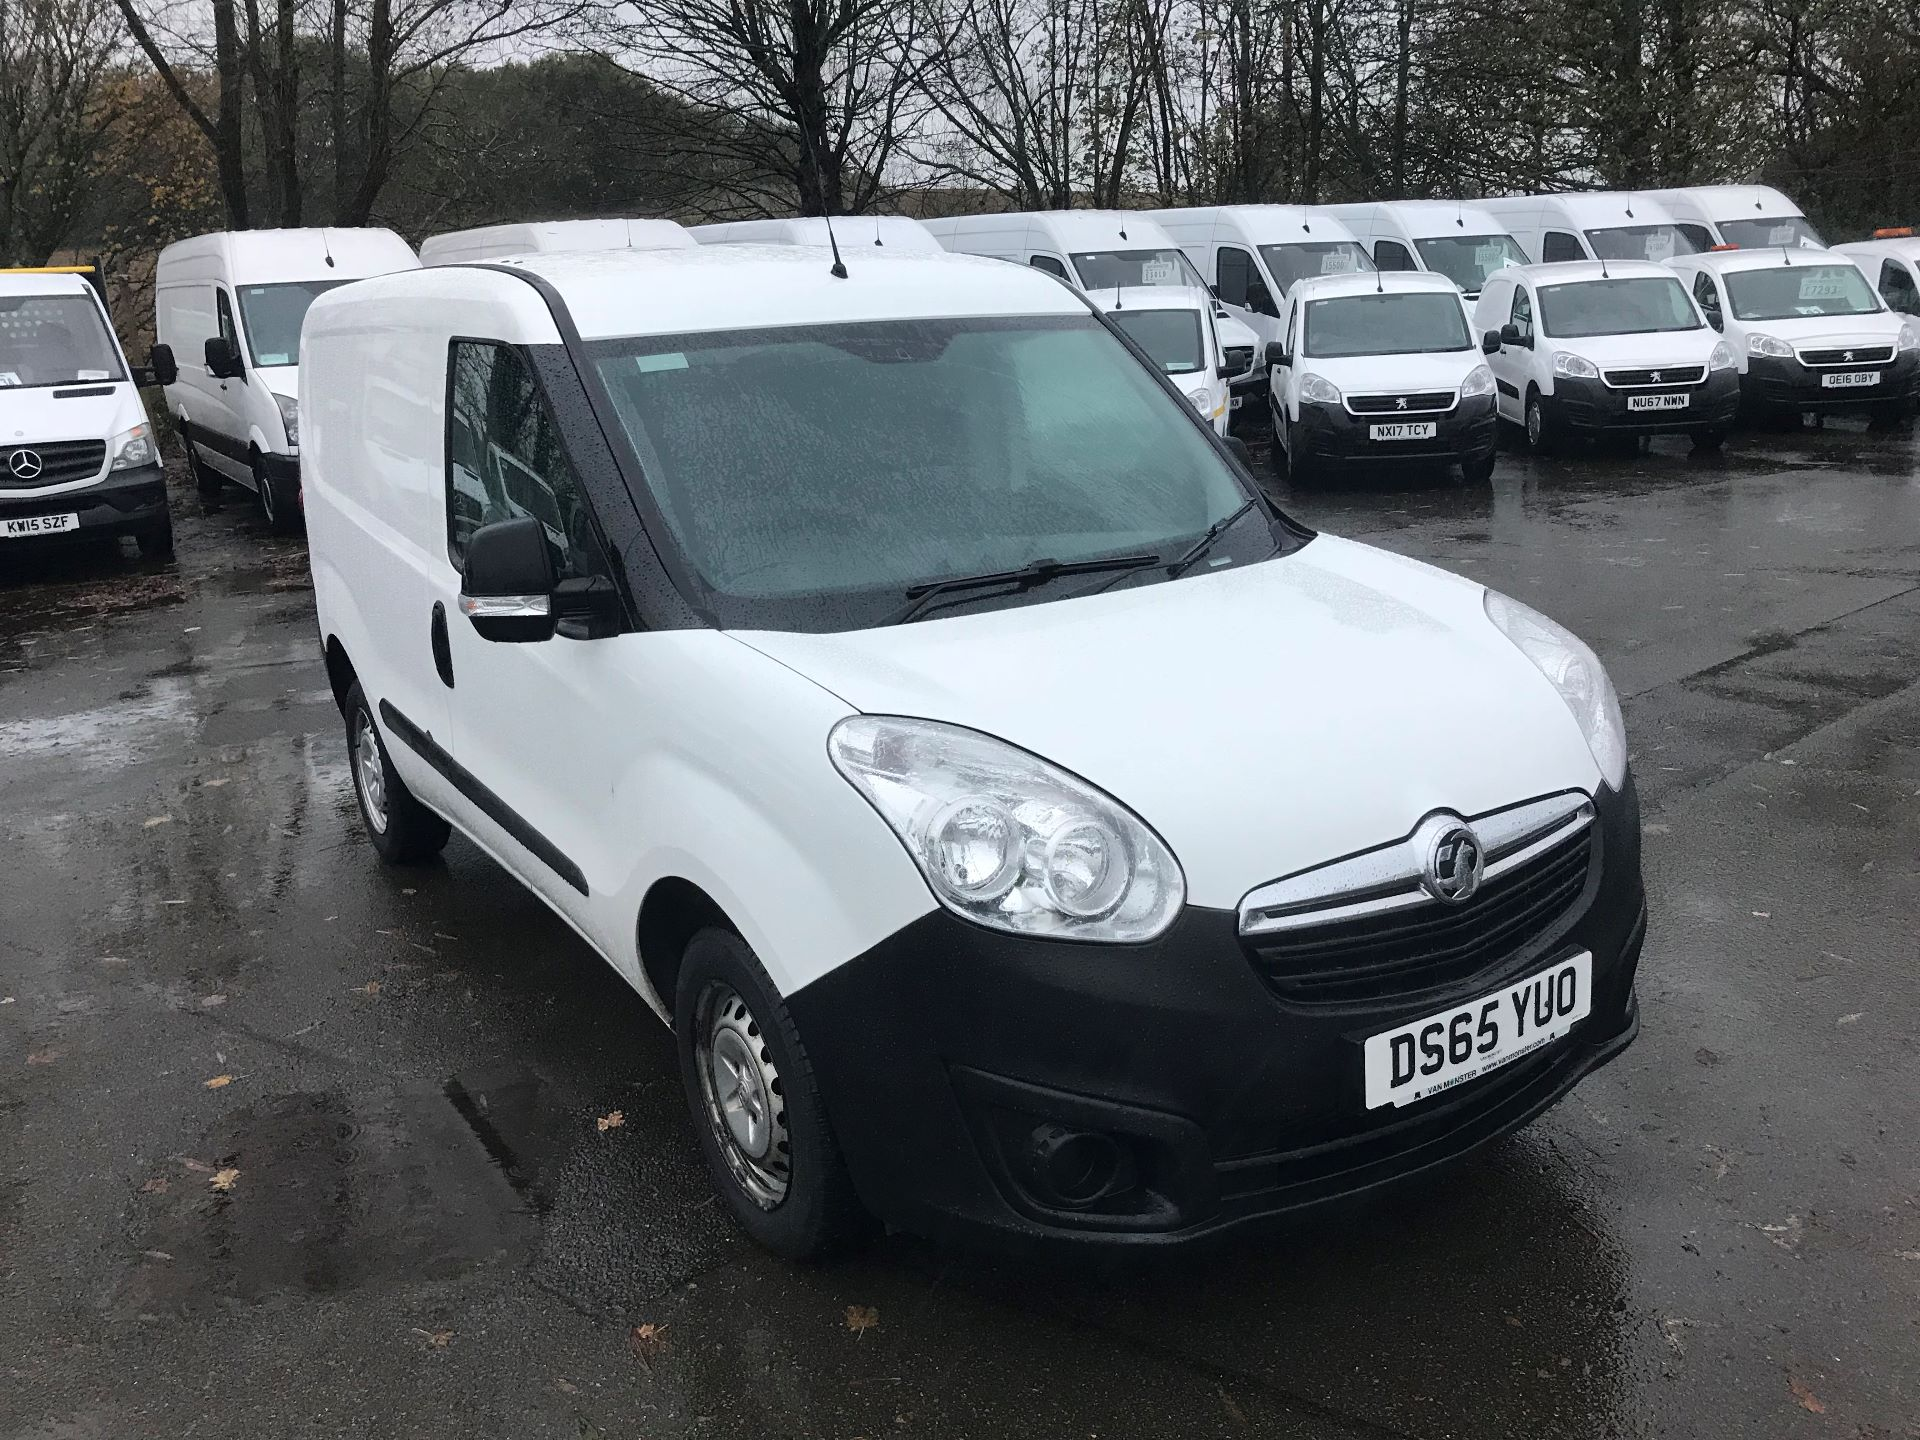 2015 Vauxhall Combo  L1 H1 2000 1.3 16V  EURO 5 (DS65YUO)